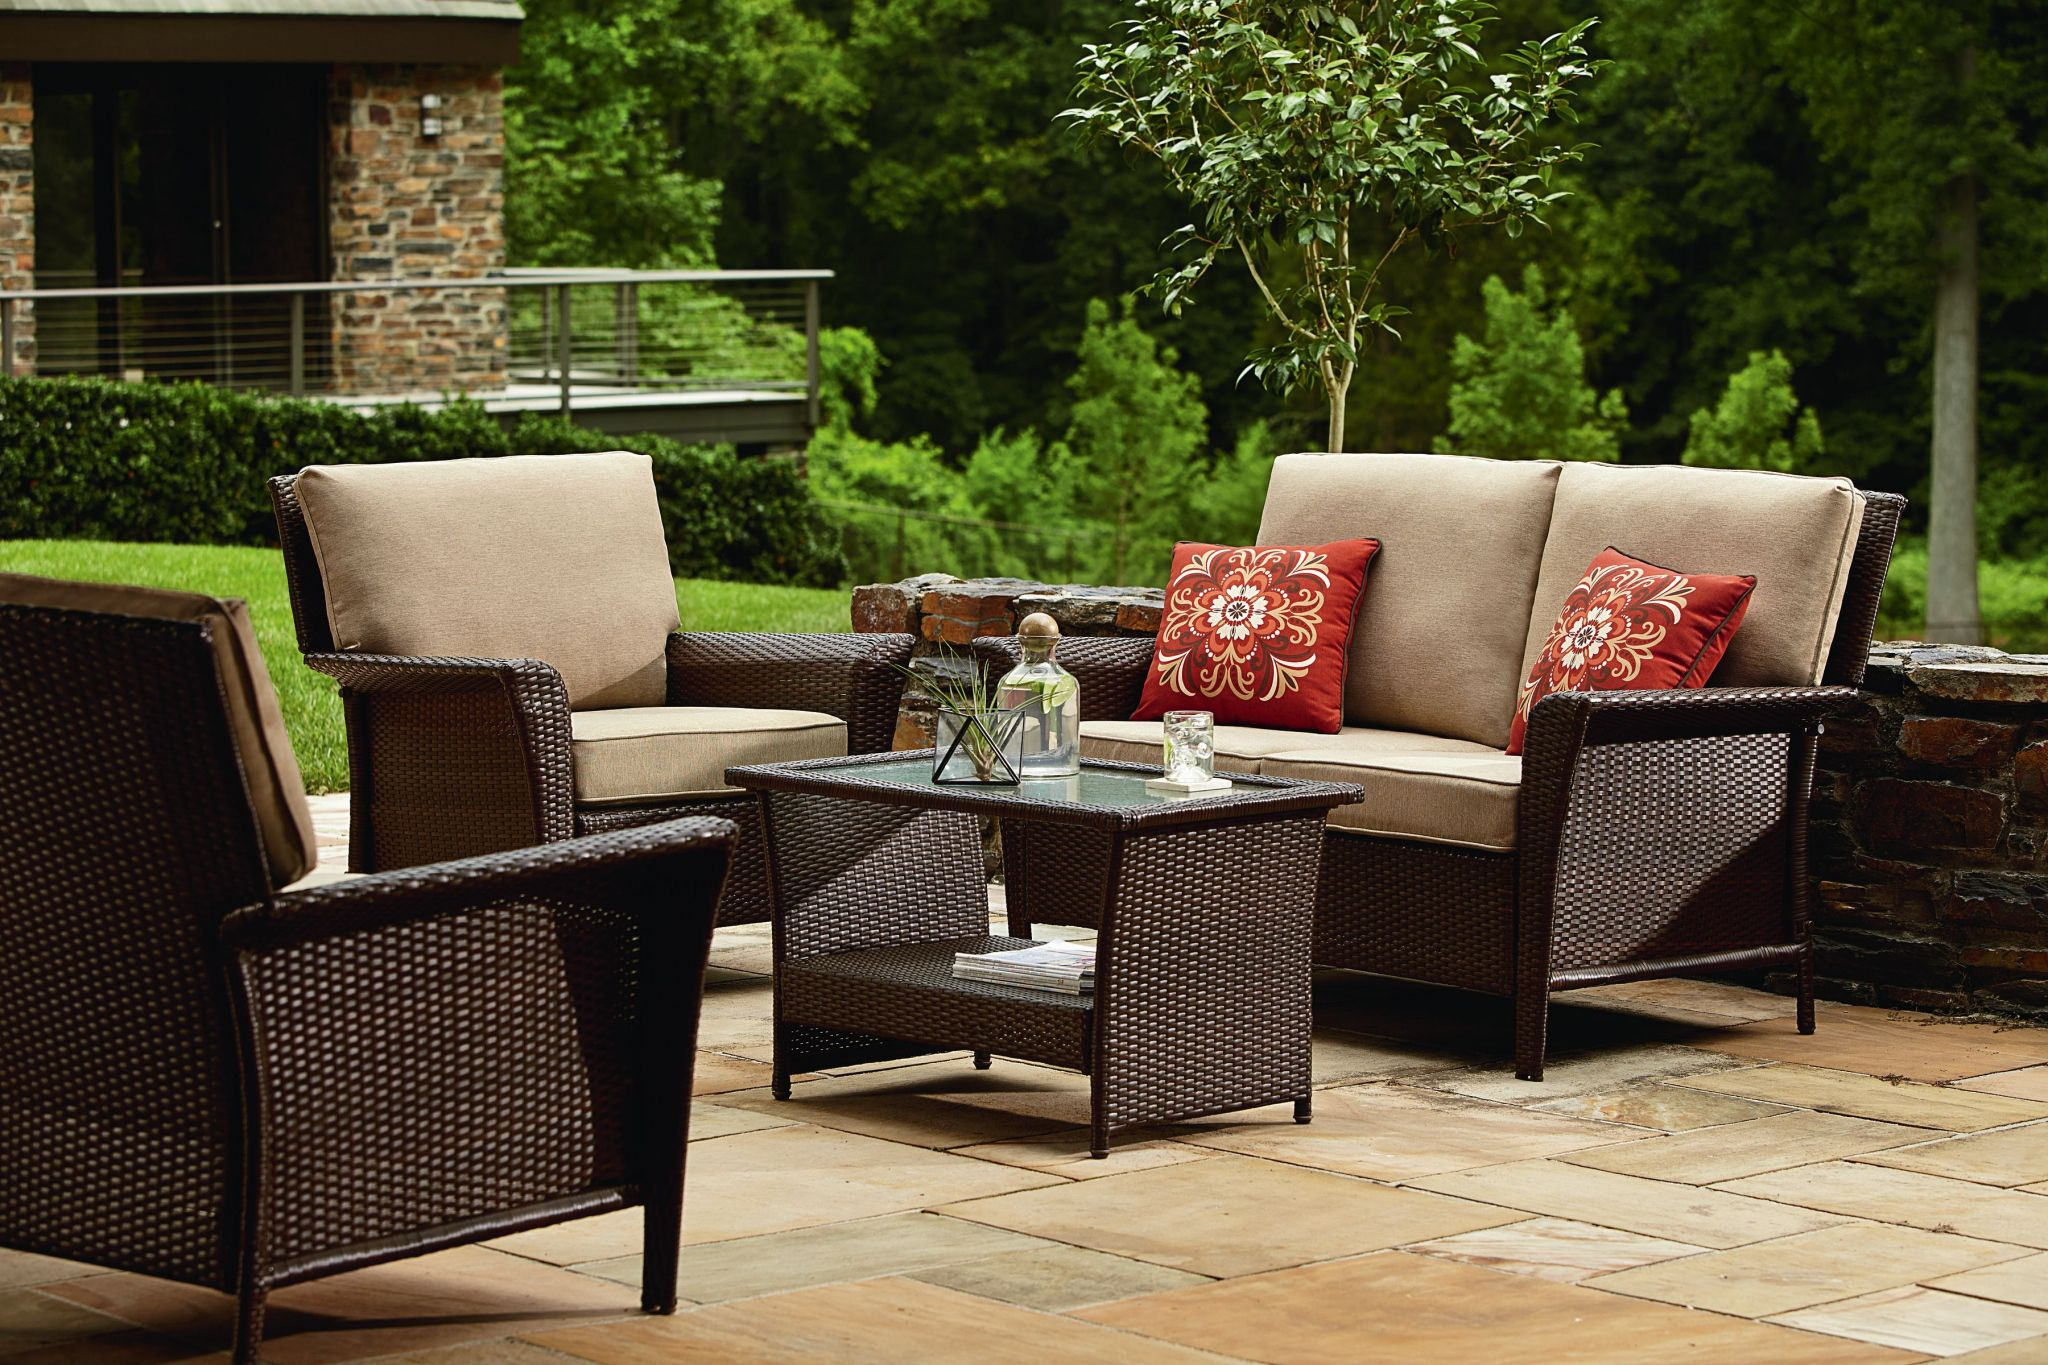 20 Sears Outdoor Furniture Cushions Interior Paint Color Schemes Check More At Http Www Mtbasics Outdoor Patio Decor Patio Decor Outdoor Living Space Patio